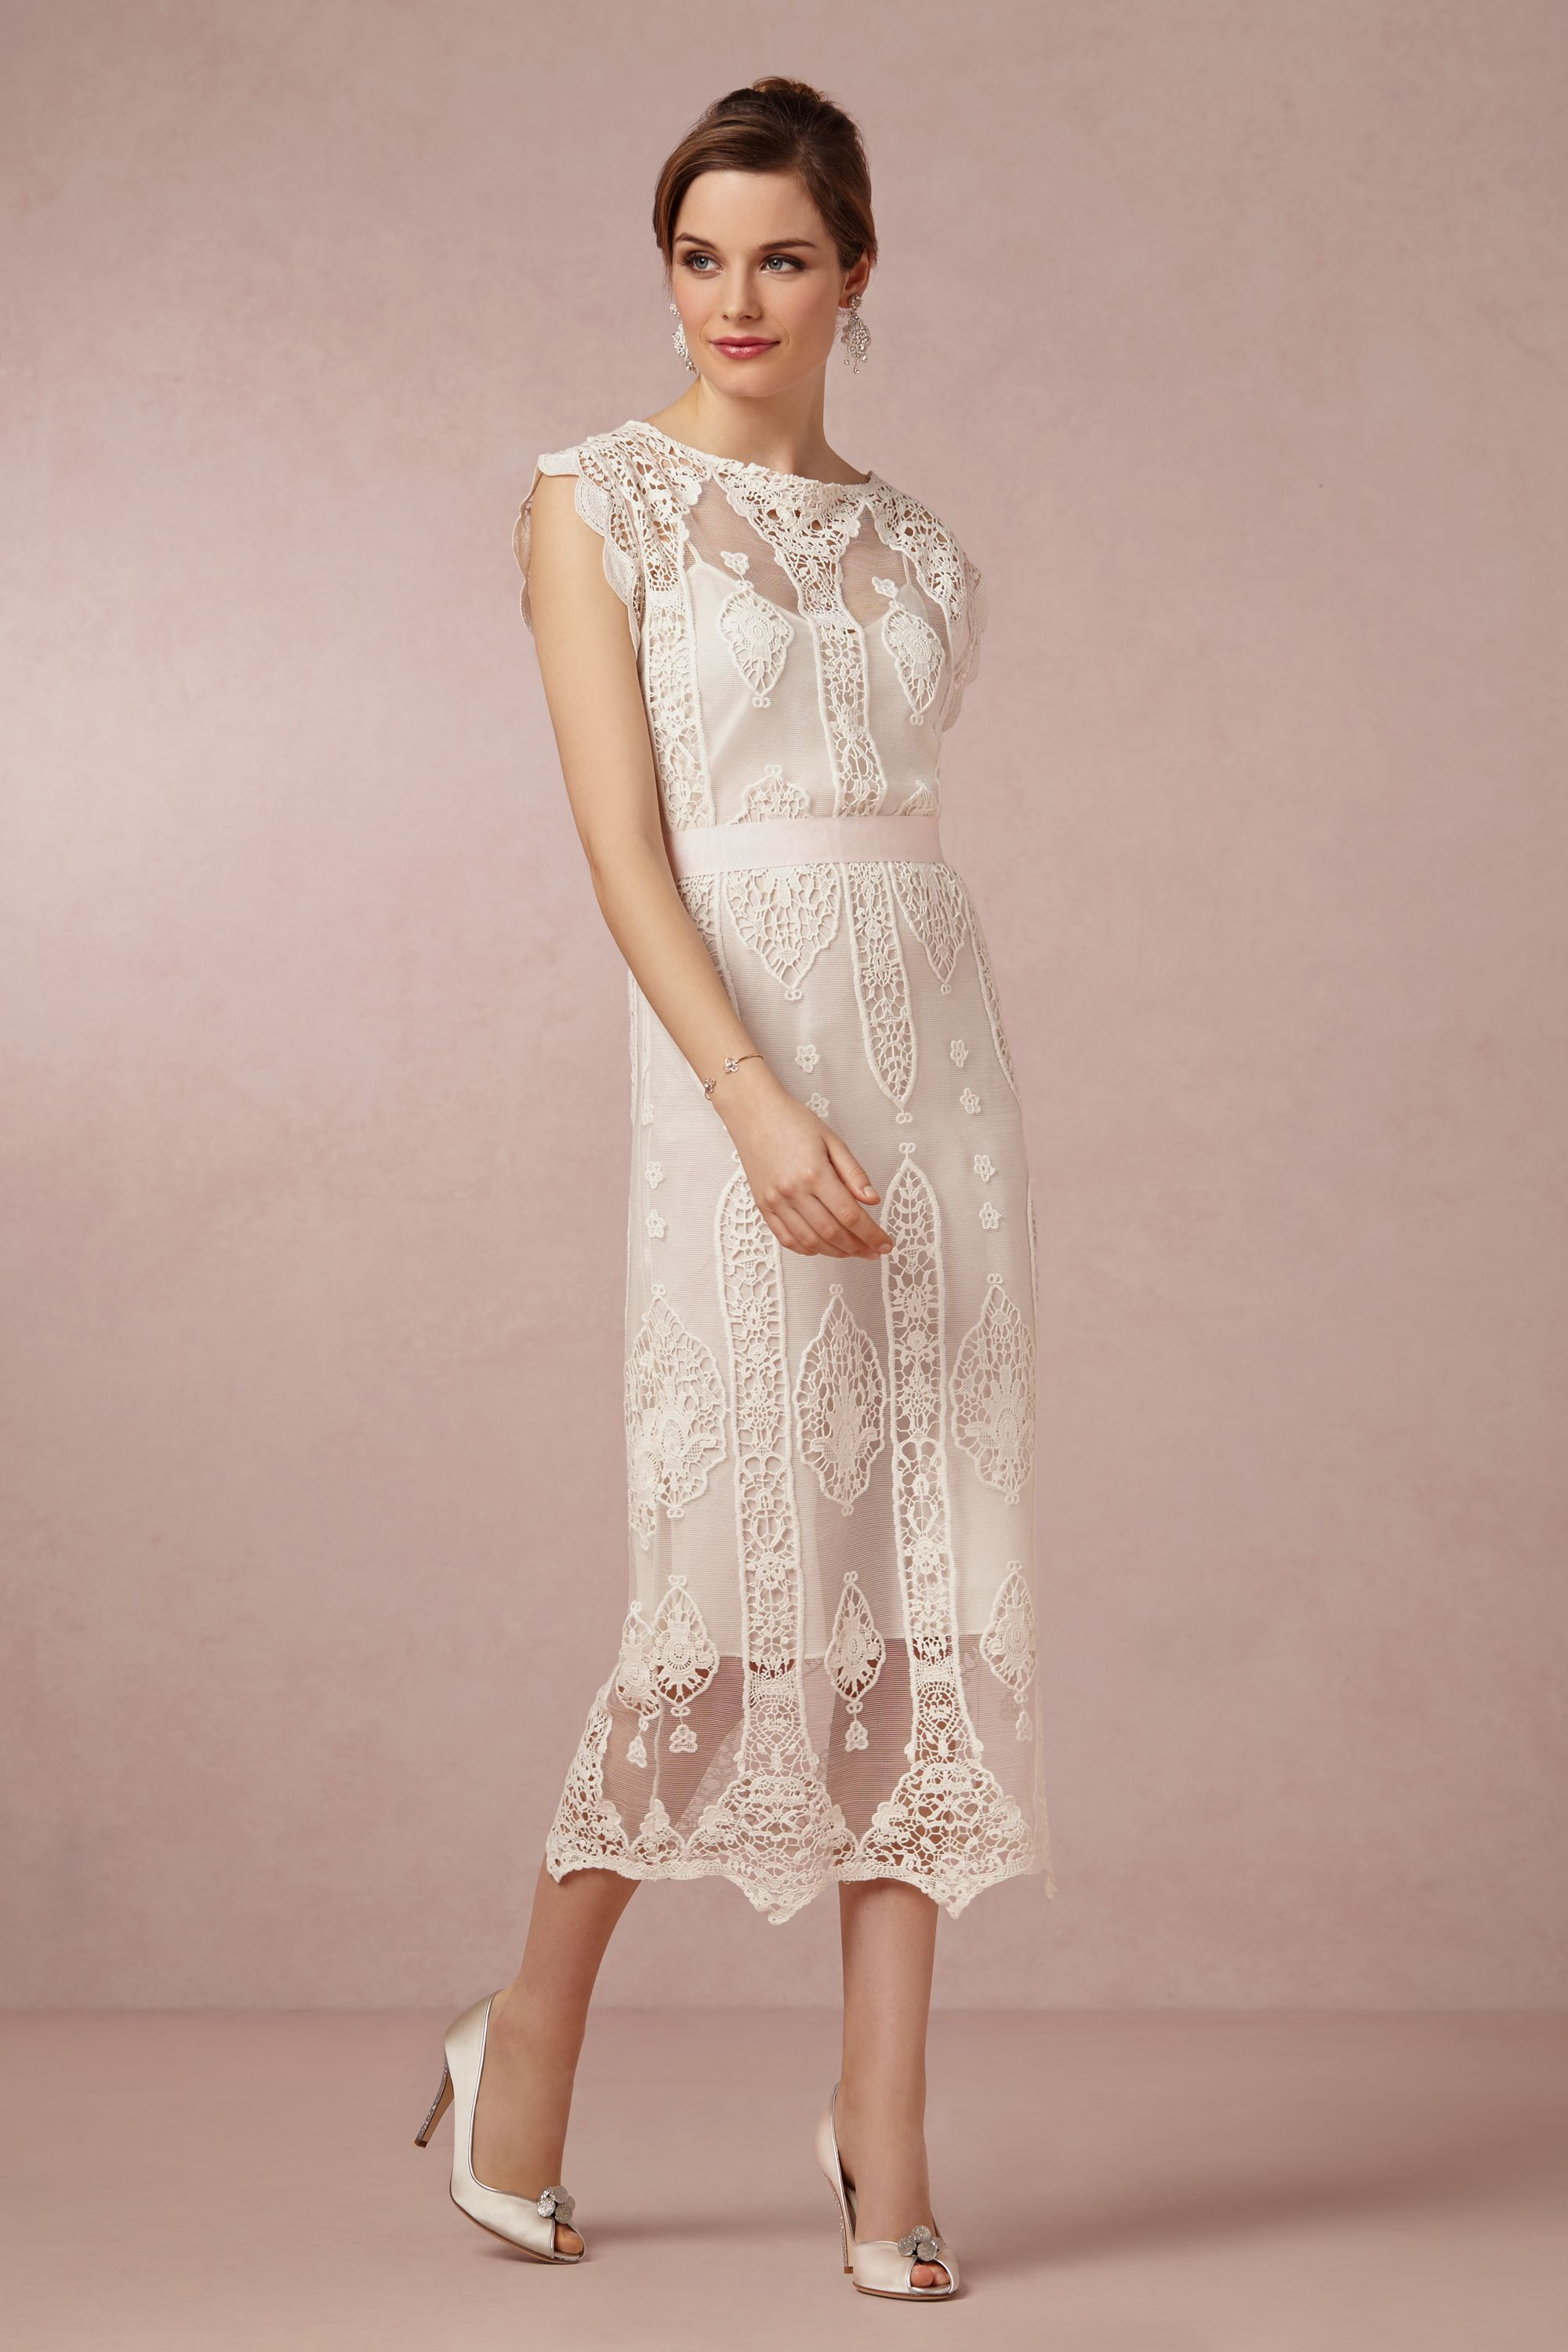 BHLDN Lilly Dress customer reviews product reviews